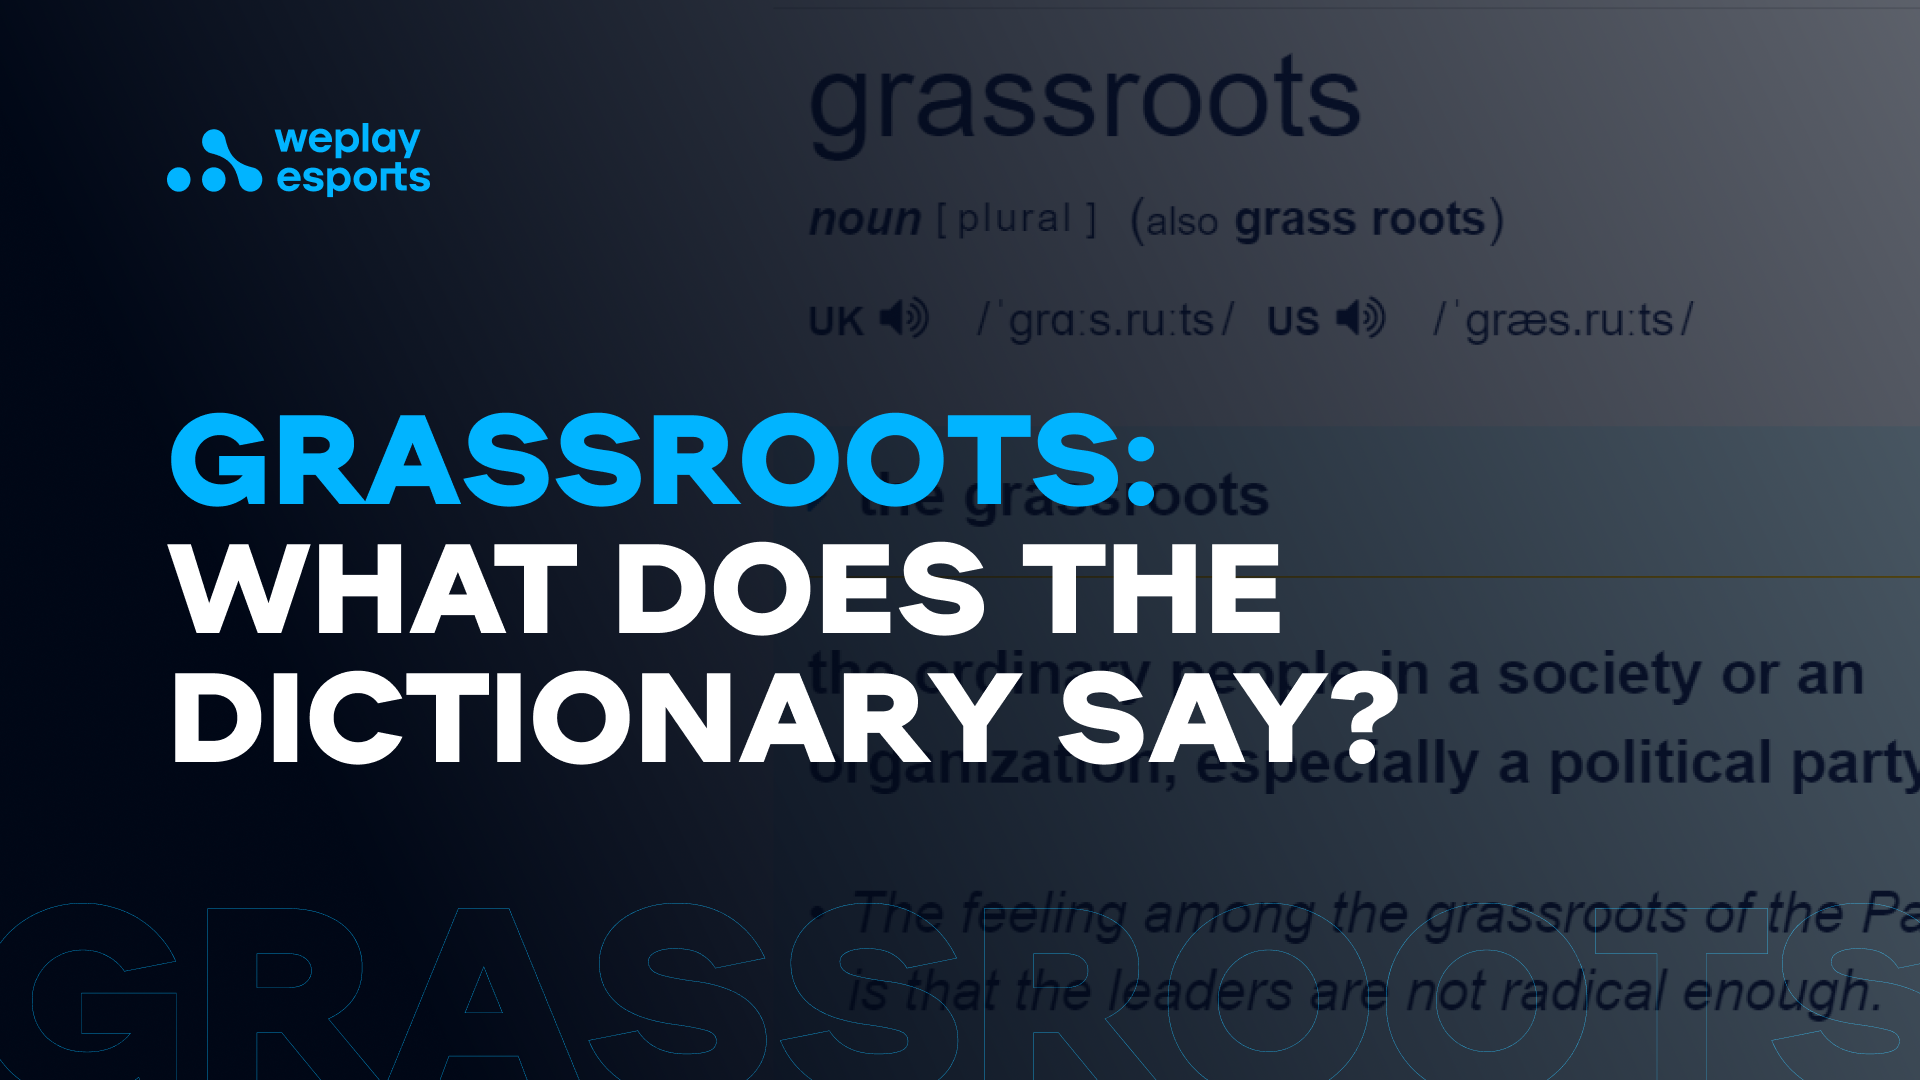 Grassroots: what does the dictionary say?